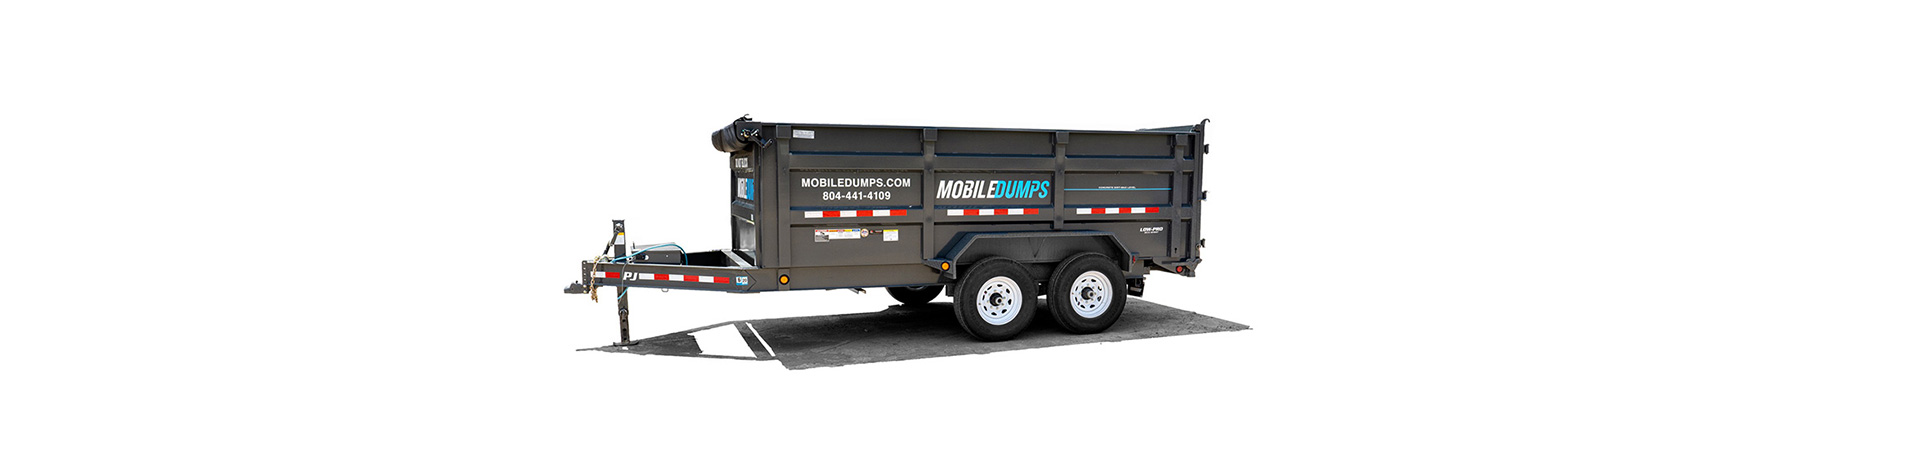 mobile dumpster used in richmond, norfolk and virginia beach